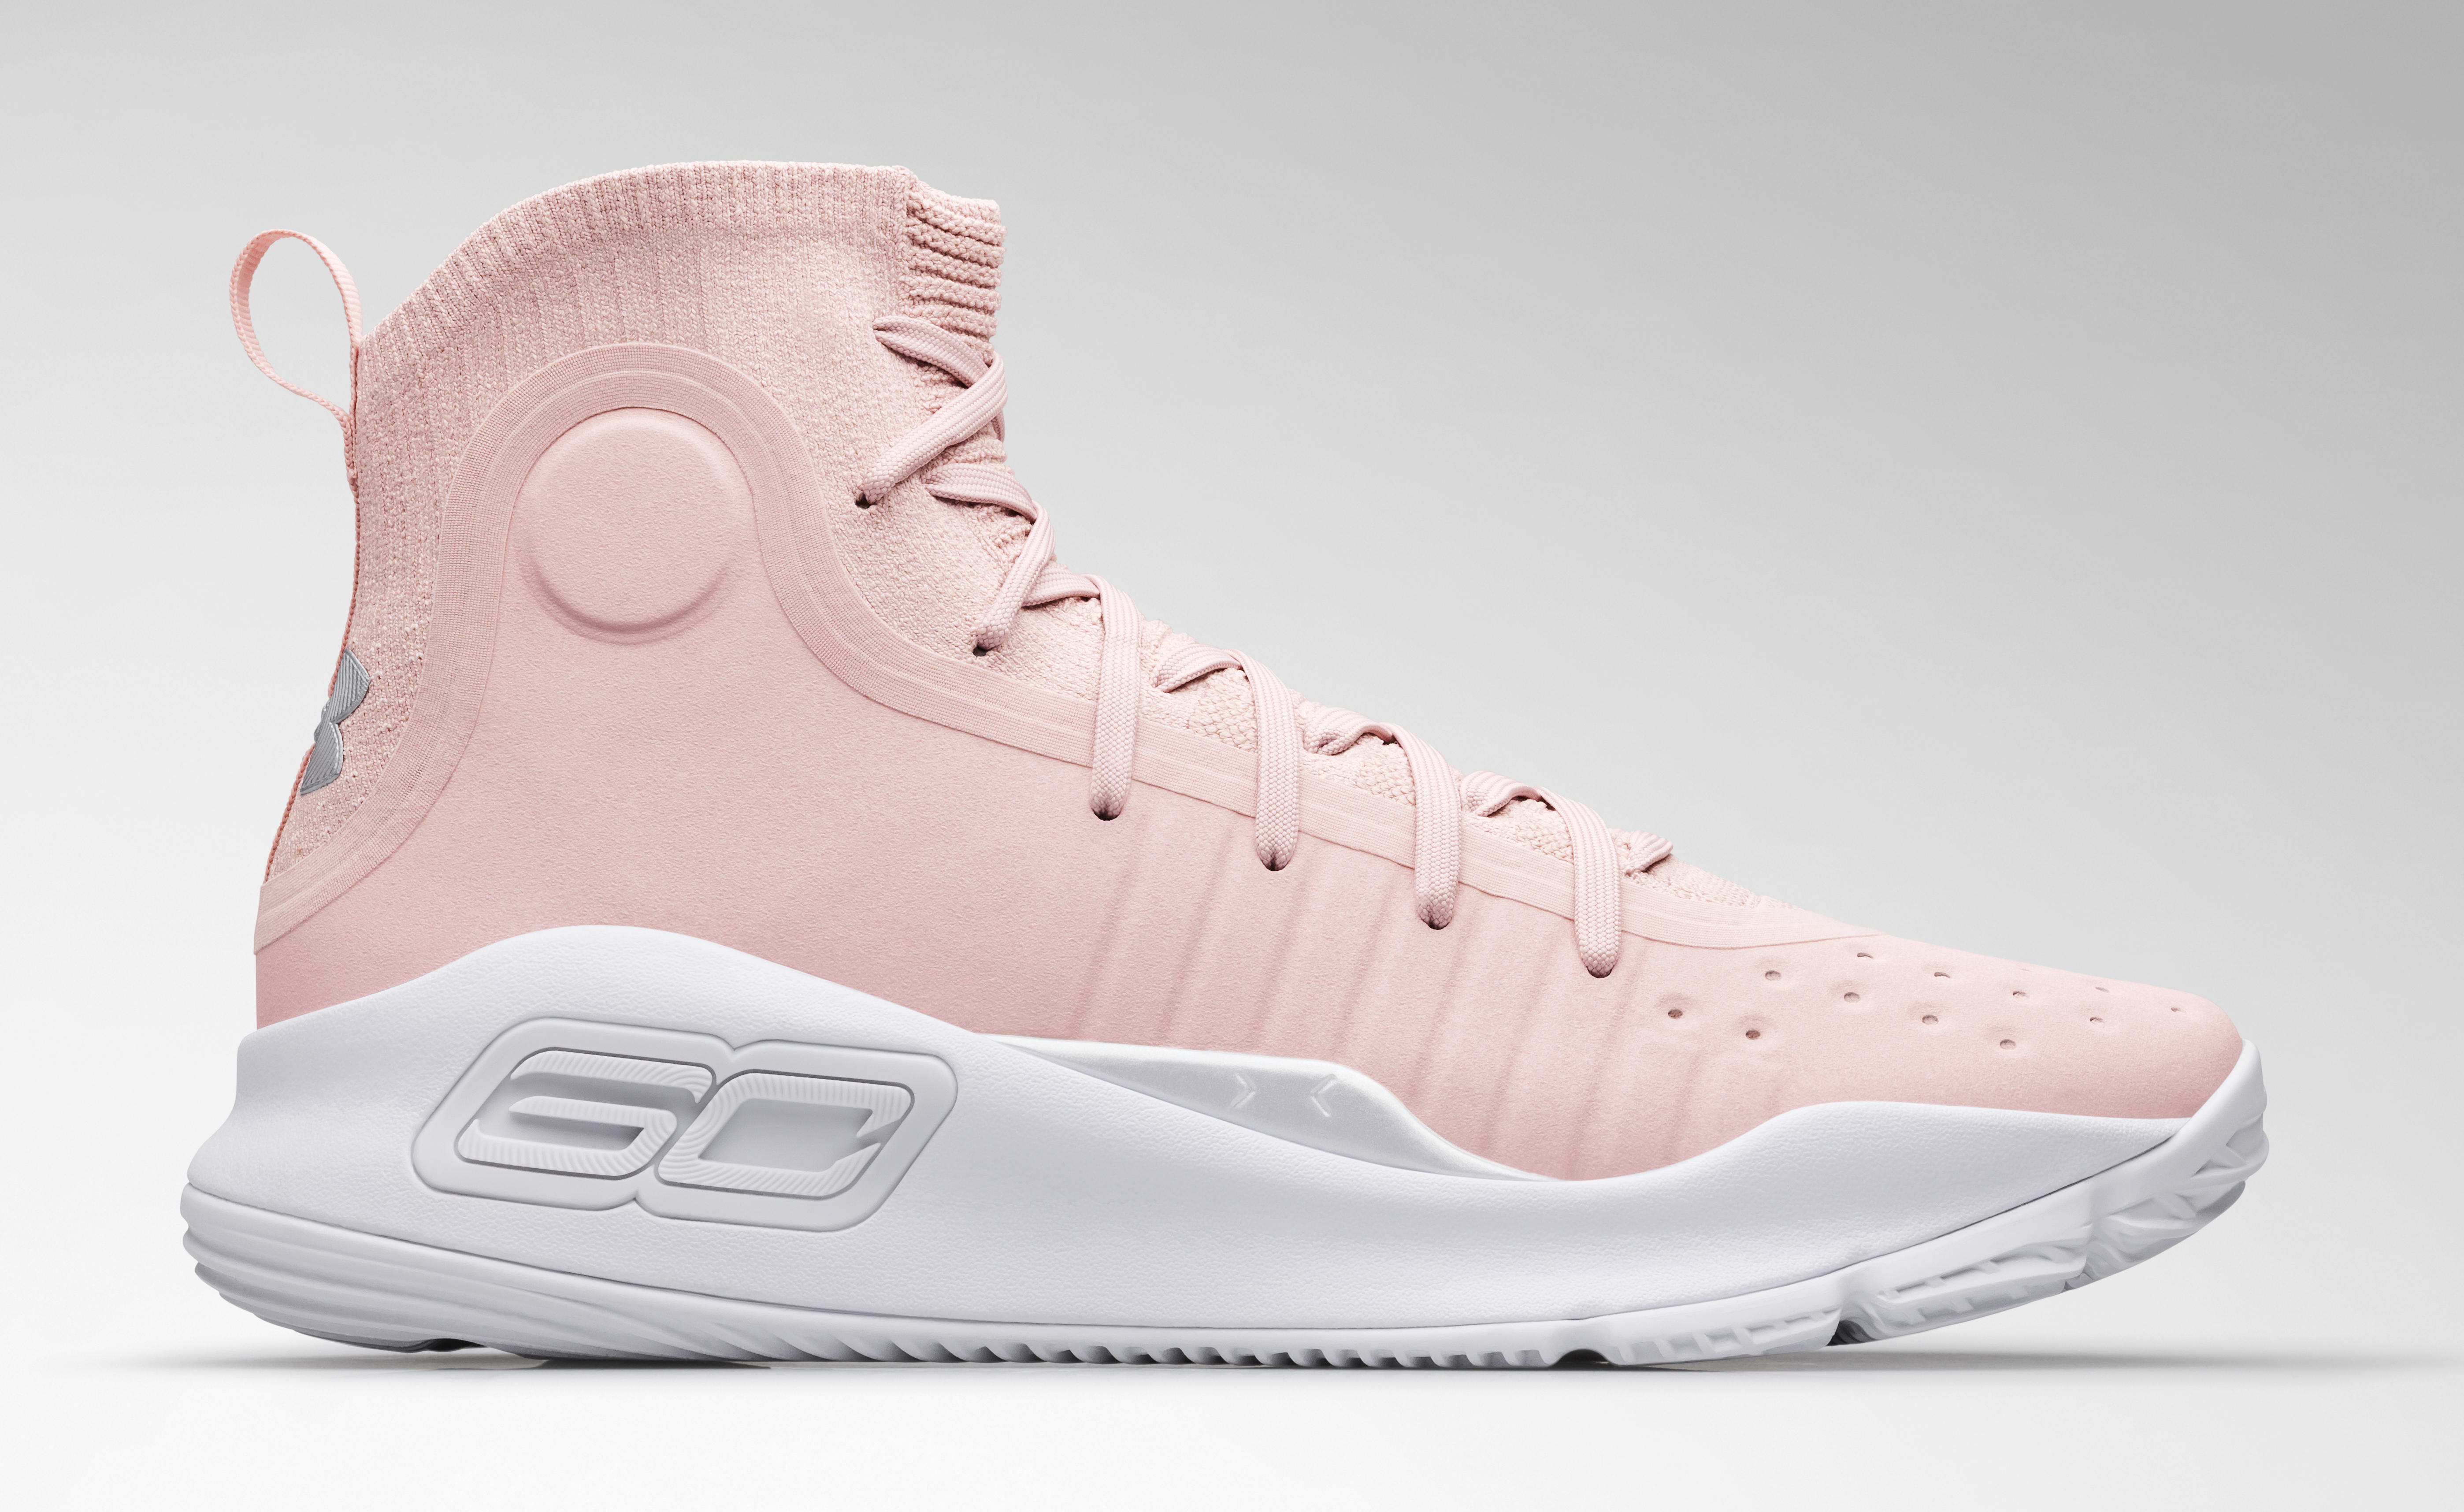 Under Armour Curry 4 'Flushed Pink' 2